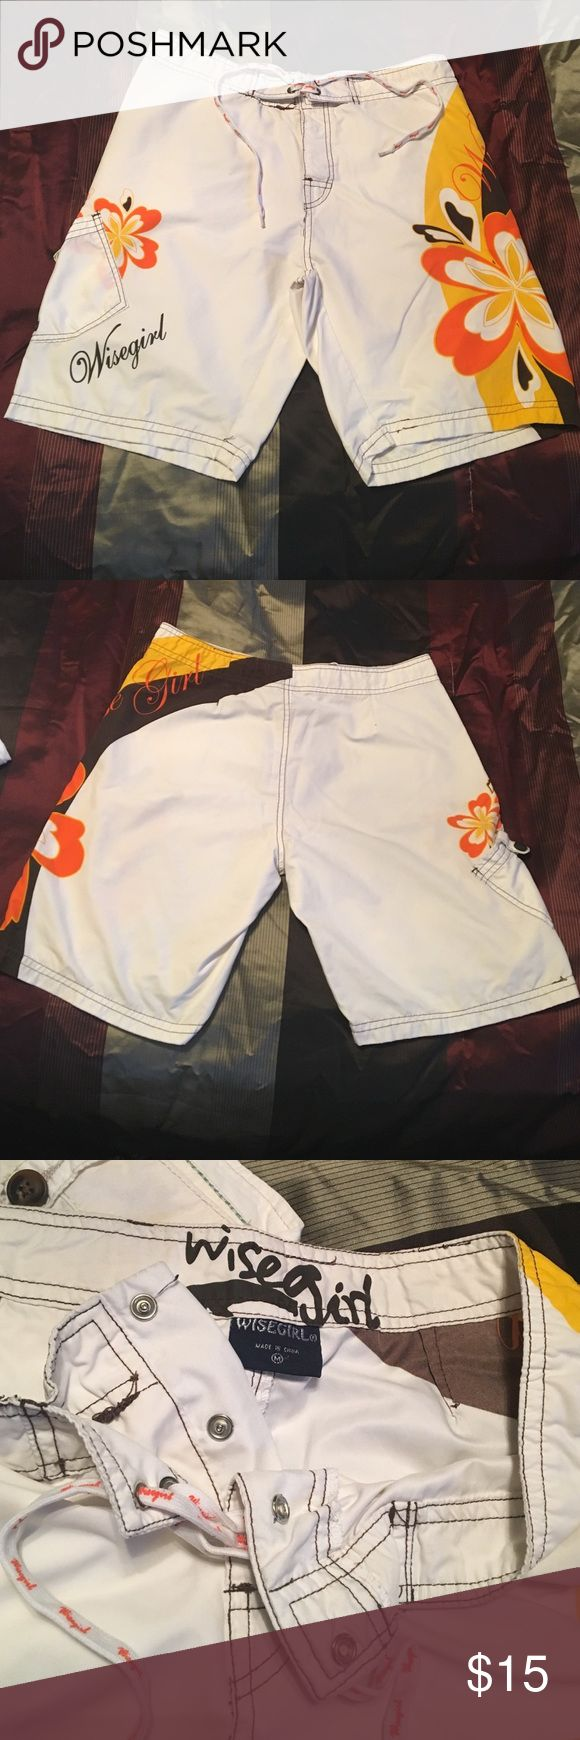 🌊Wise Girl Board Shorts White wise girl board shorts, with brown, yellow, and orange patterns on both sides of the shorts. Pocket on the right side while worn. Front snaps and ties for a secure fit. Laces are in great shape, no pulls or fraying. Shorts are also in great shape, barely worn. Material is like a men's swim trunk material. 100% polyester. Size medium, waistband is approx. 32 inches around. Wise Girl Swim